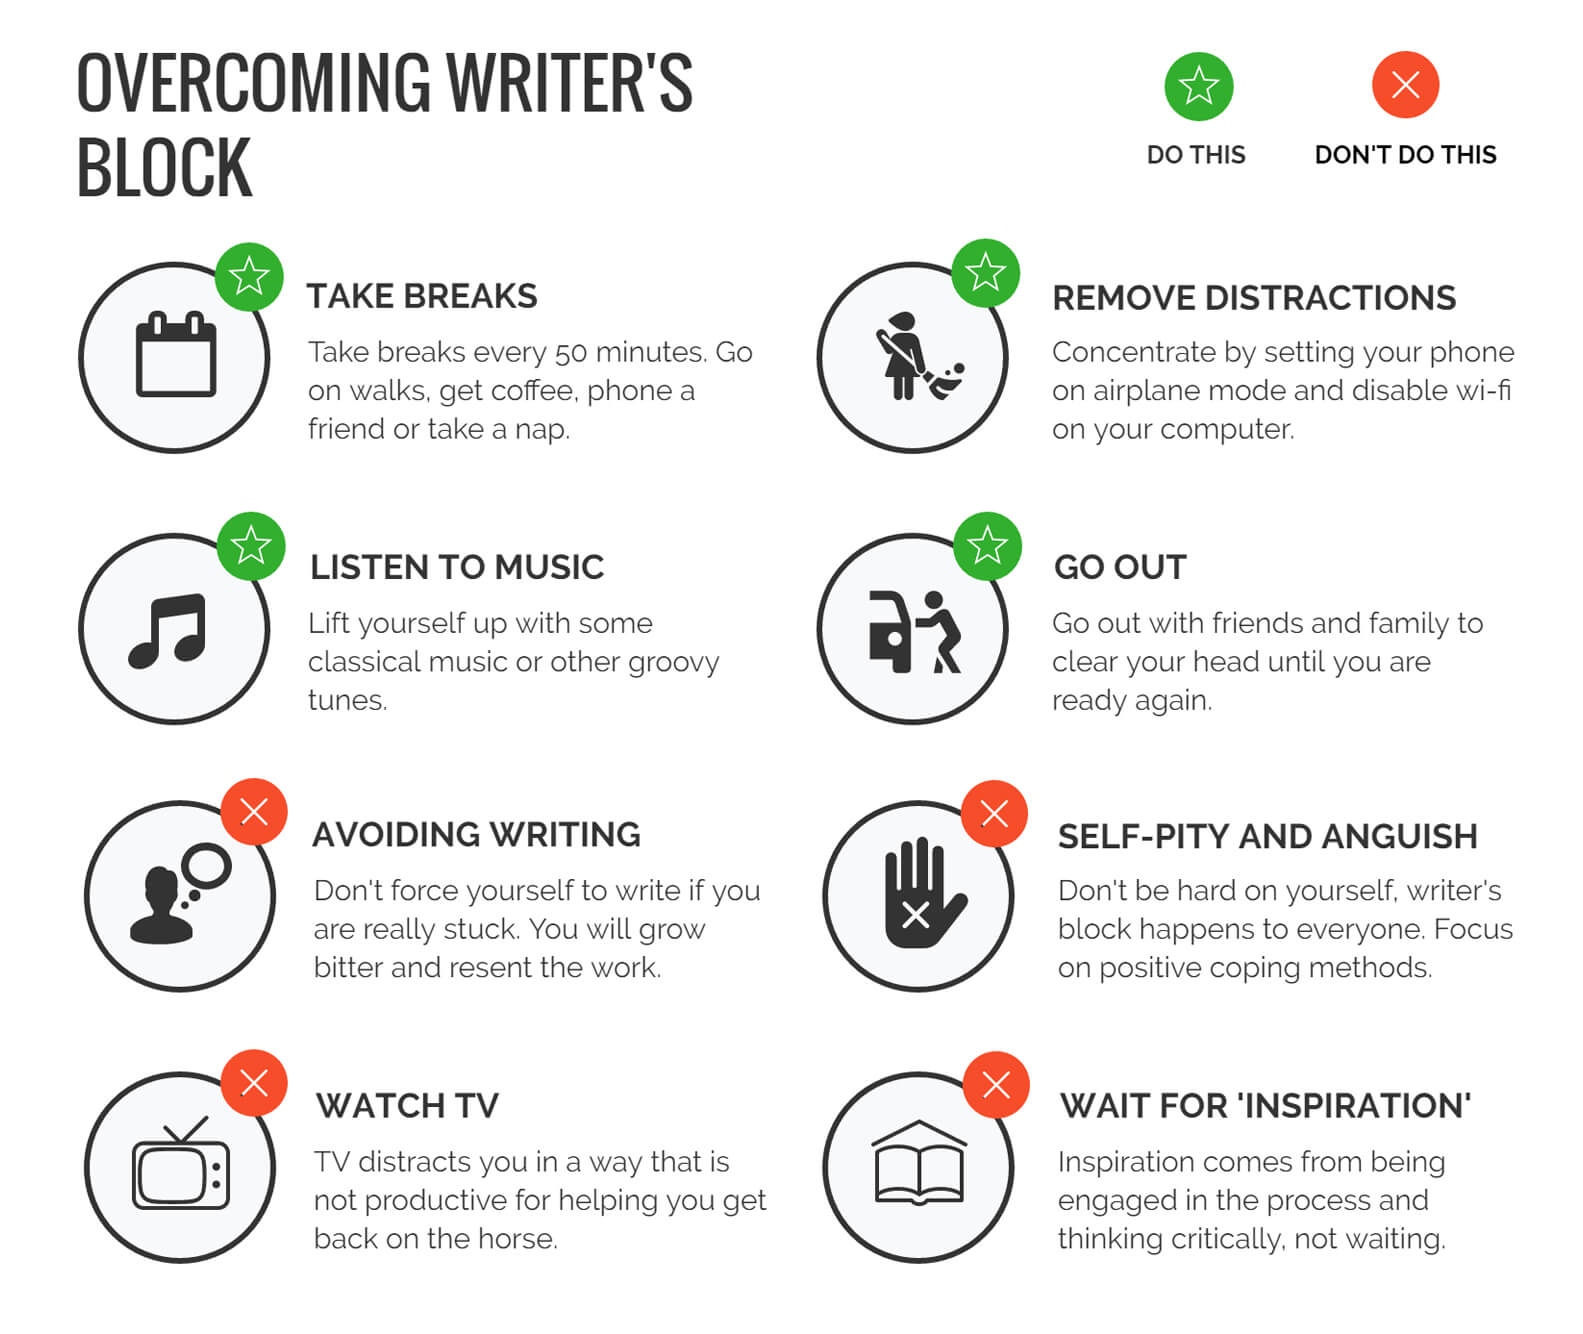 Steps to Overcoming Writer's Block